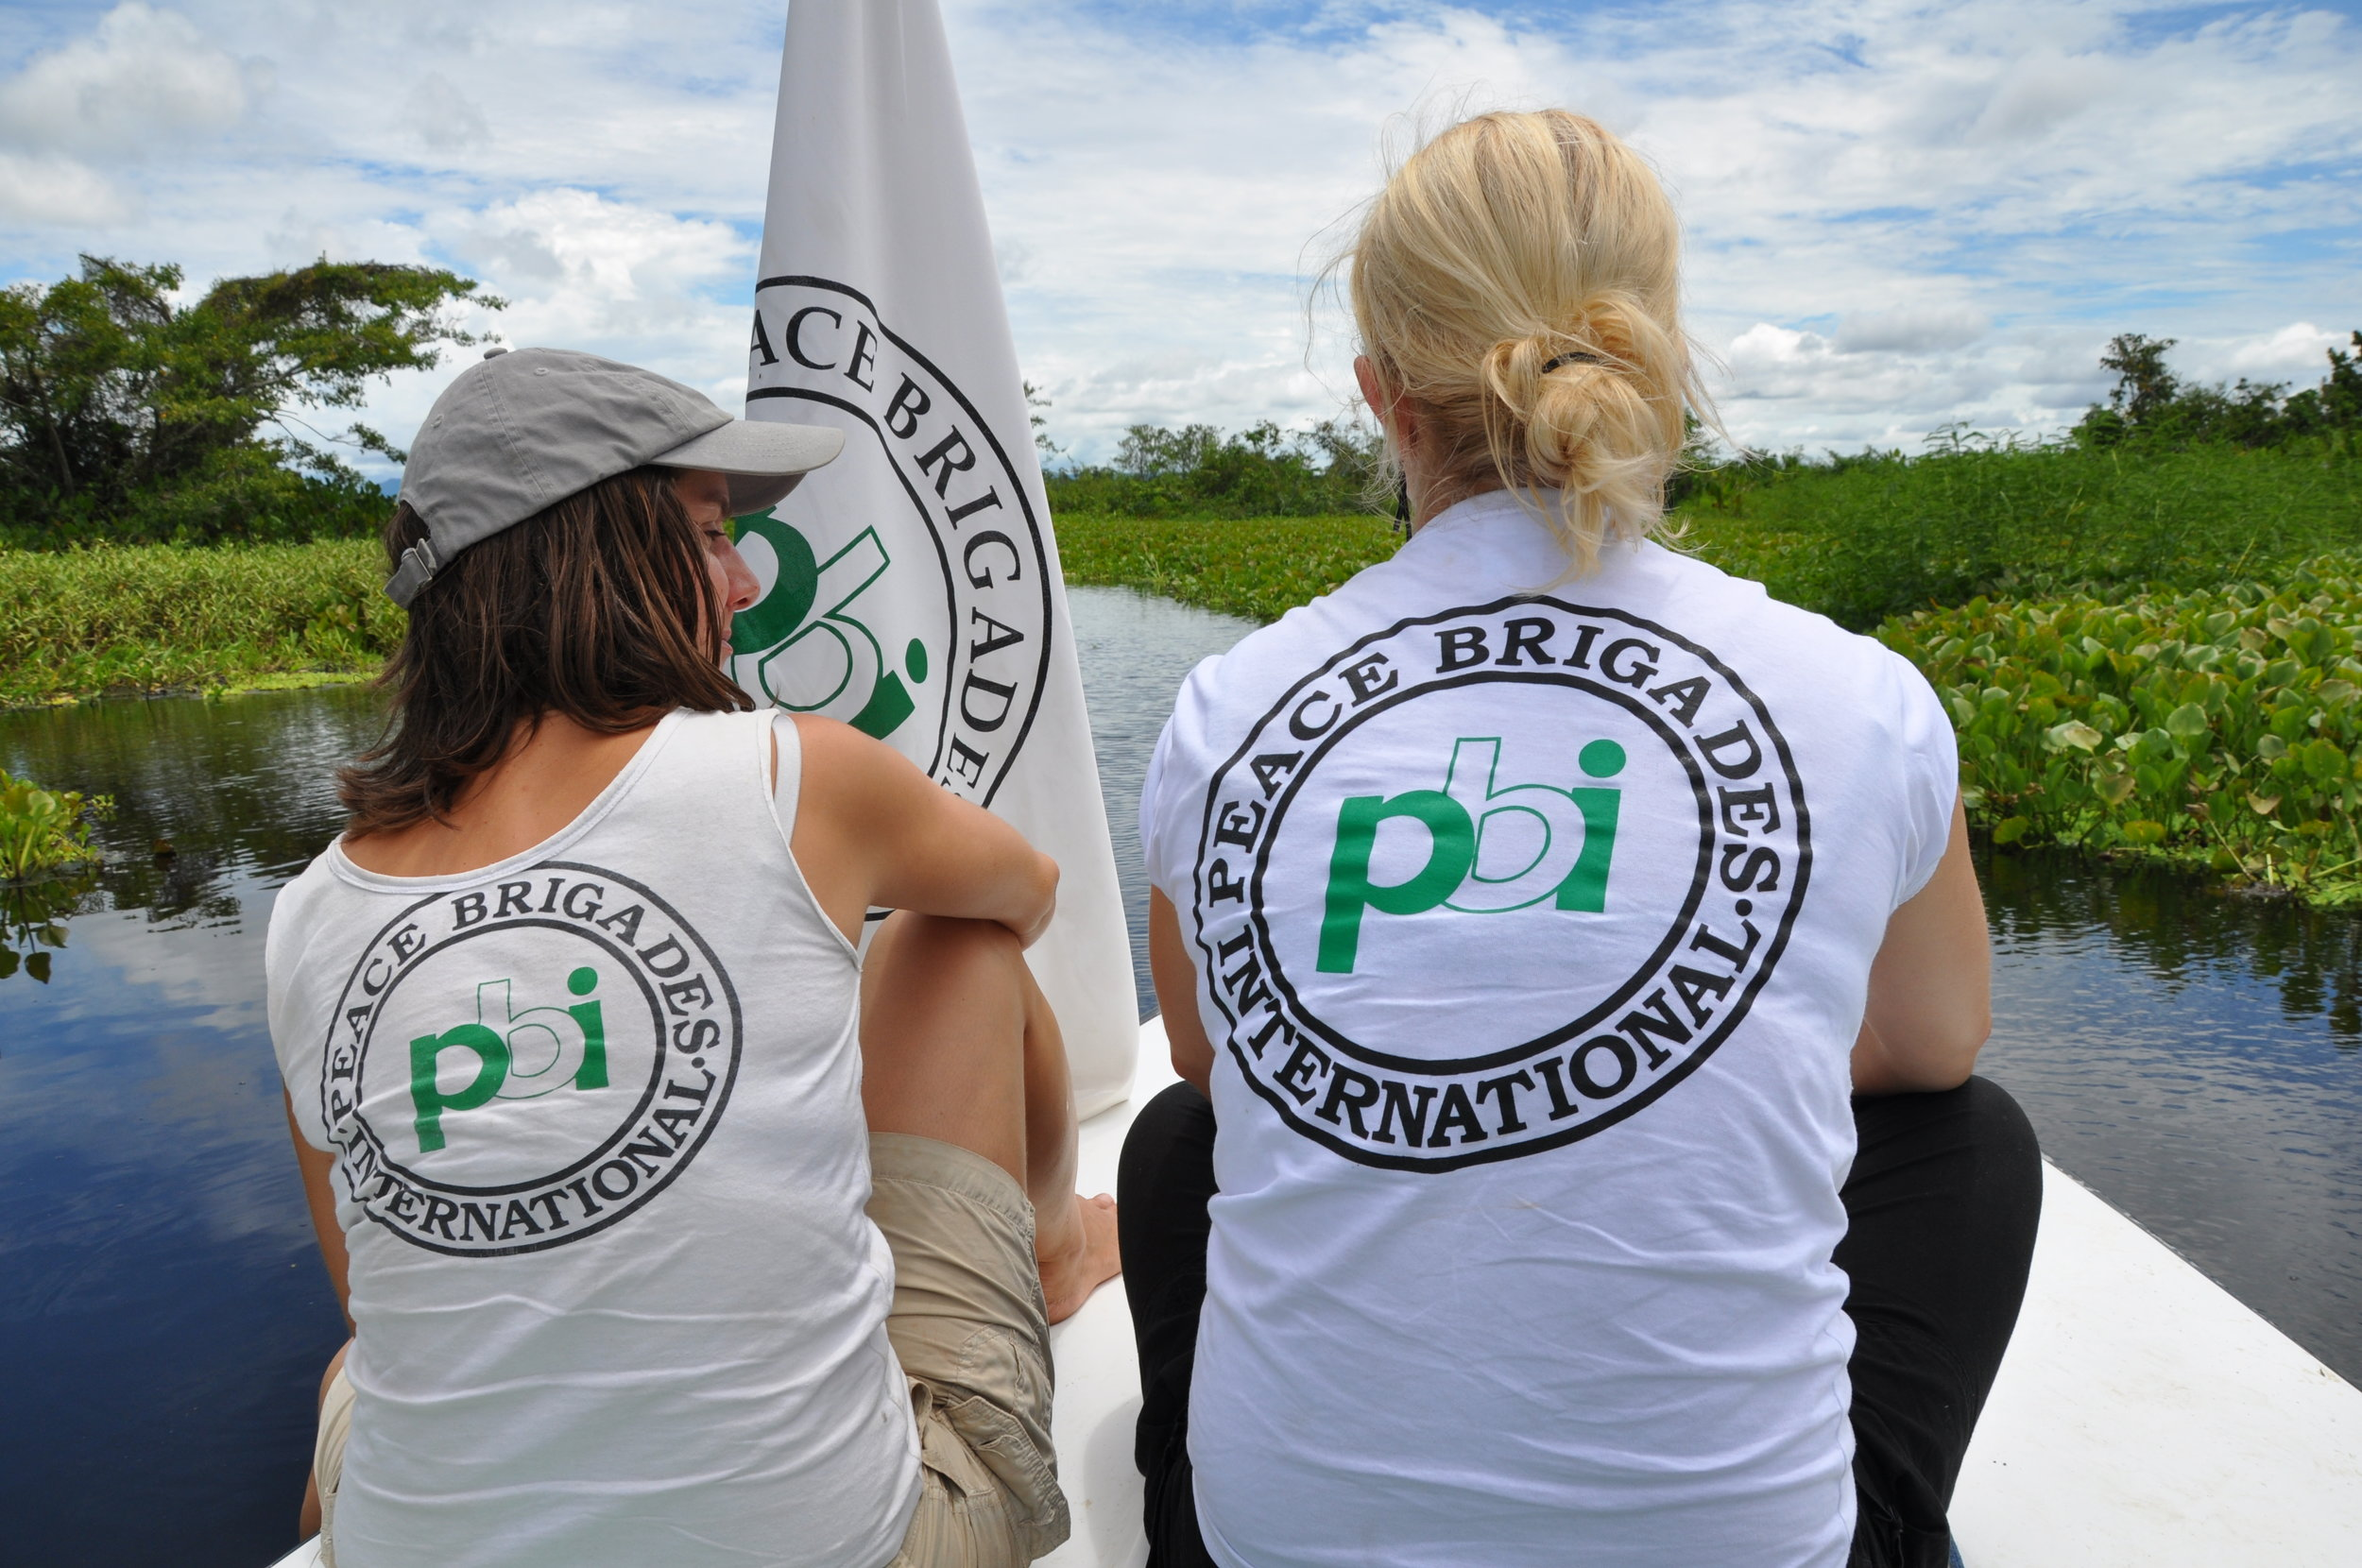 Photo by PBI Colombia